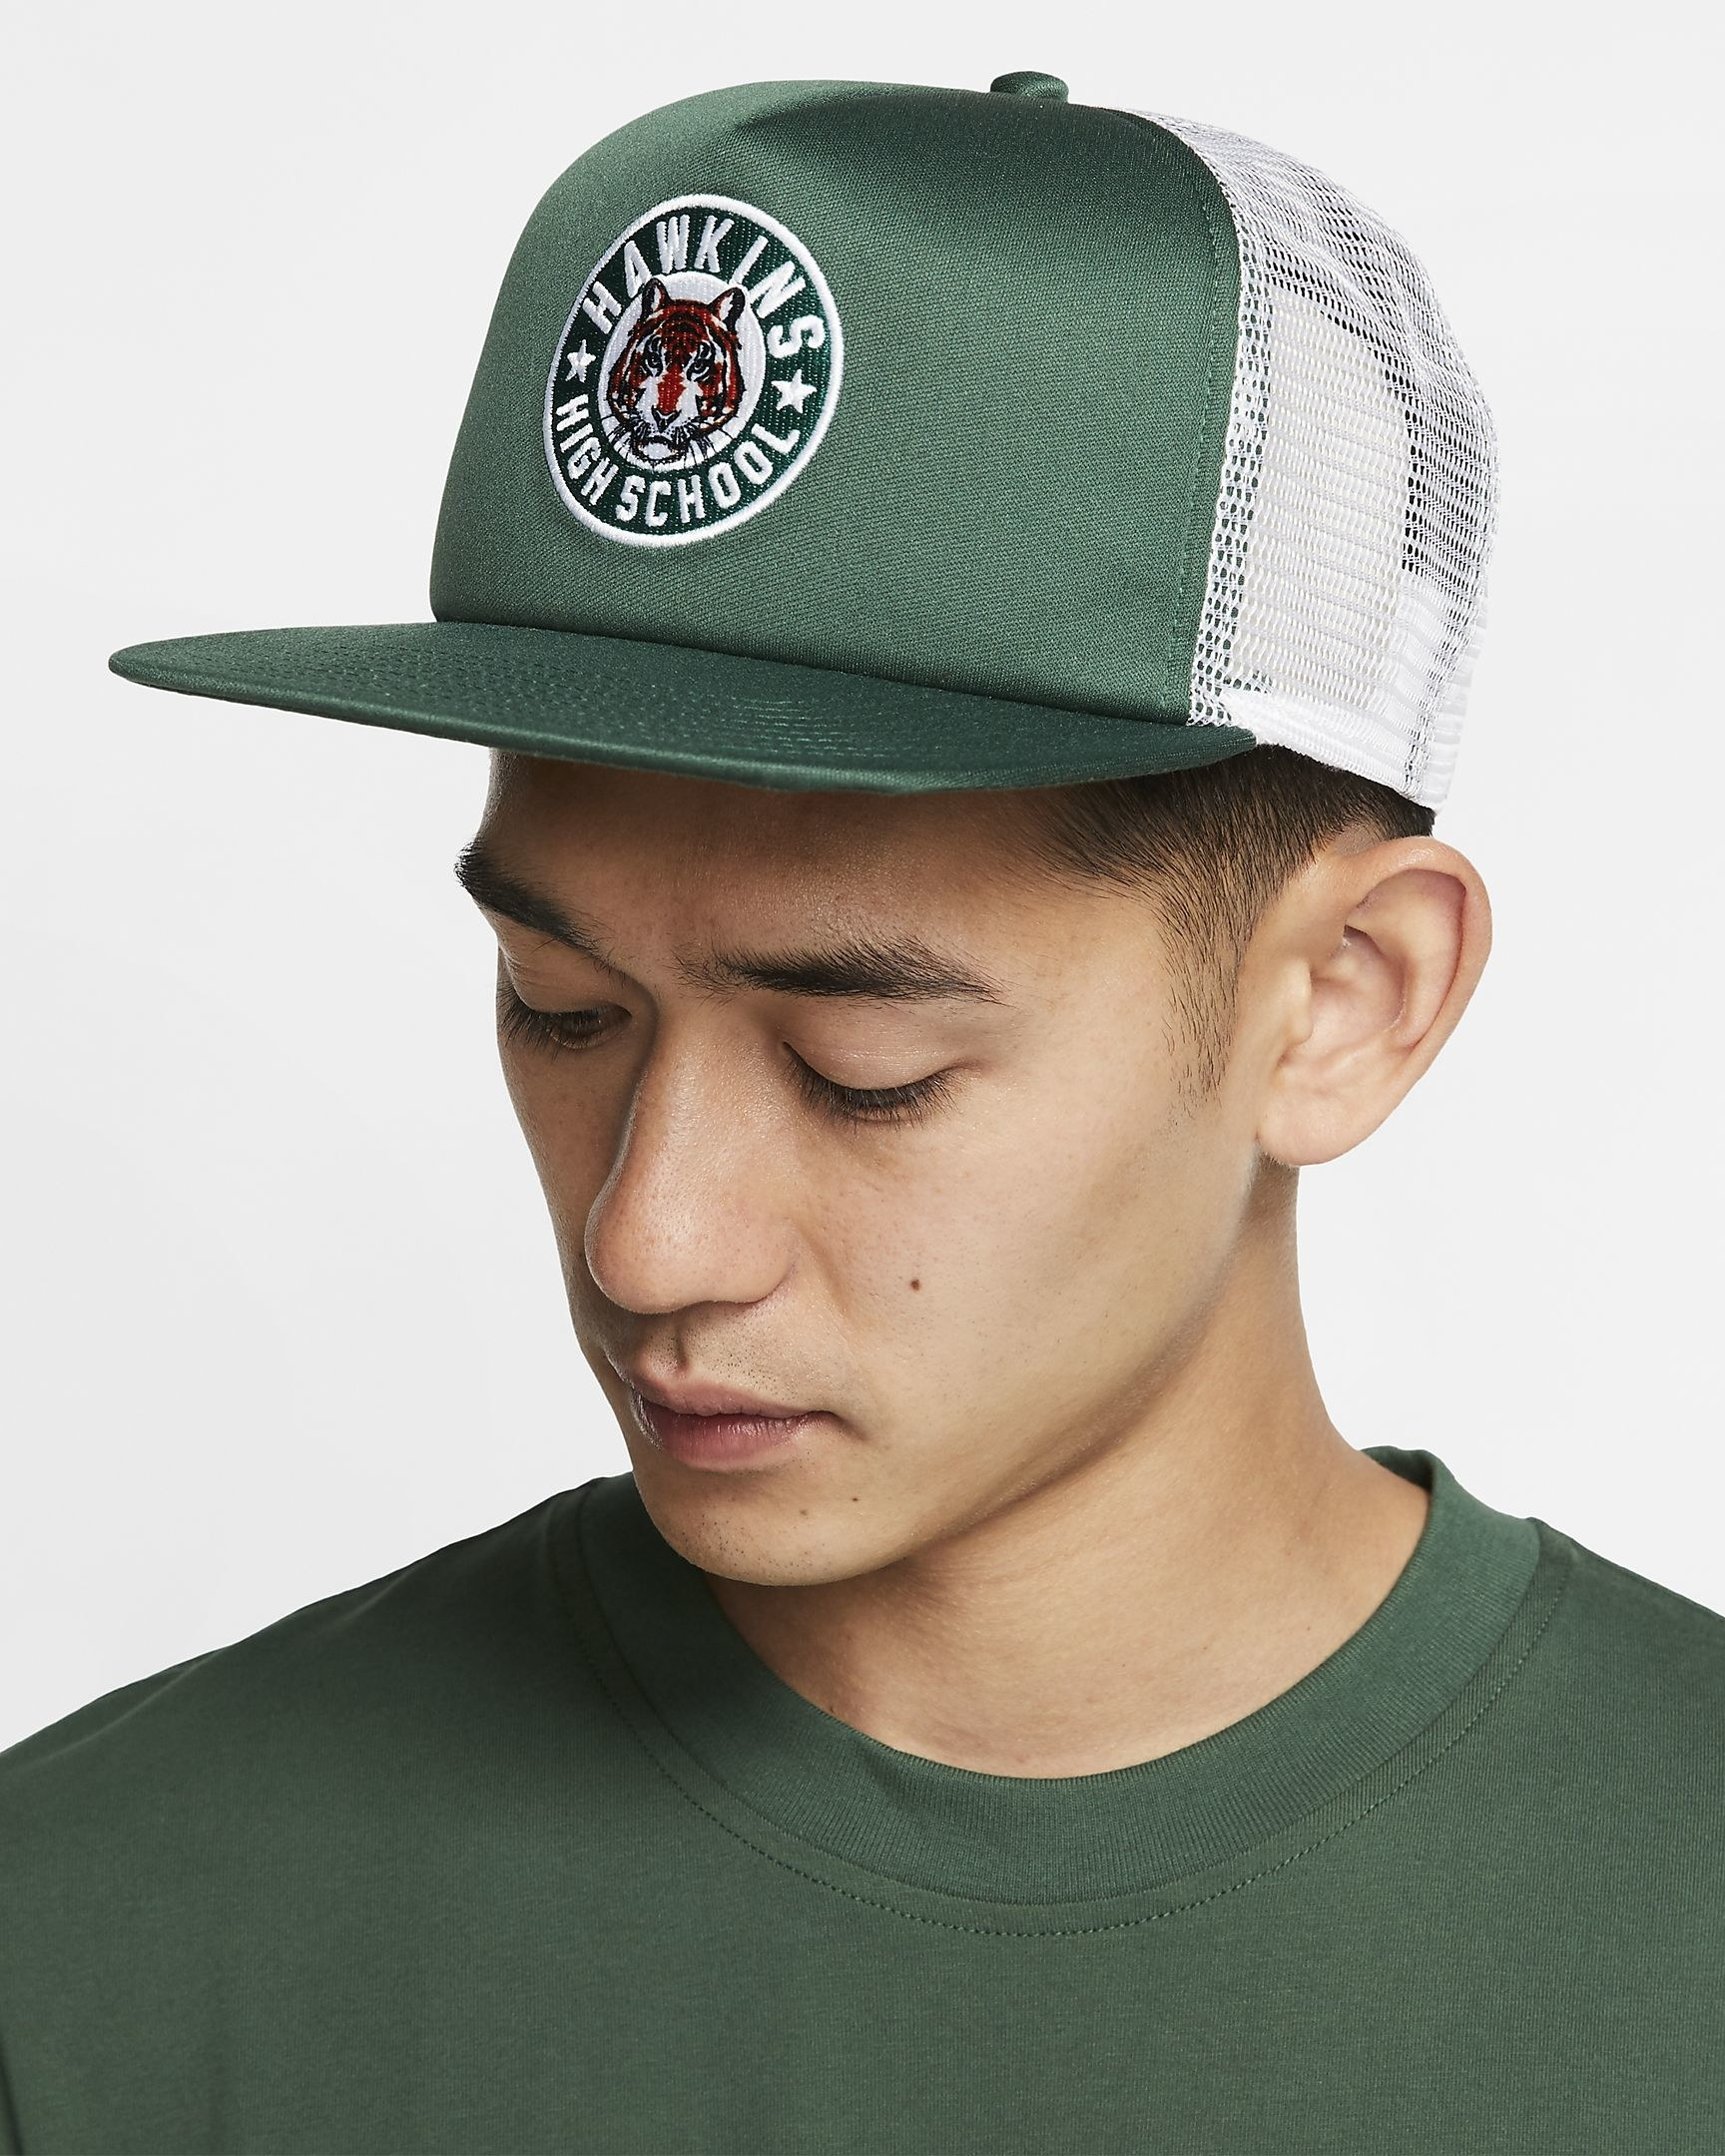 A model wearing the green and white mesh back baseball cap with the Hawkins Middle School tiger logo